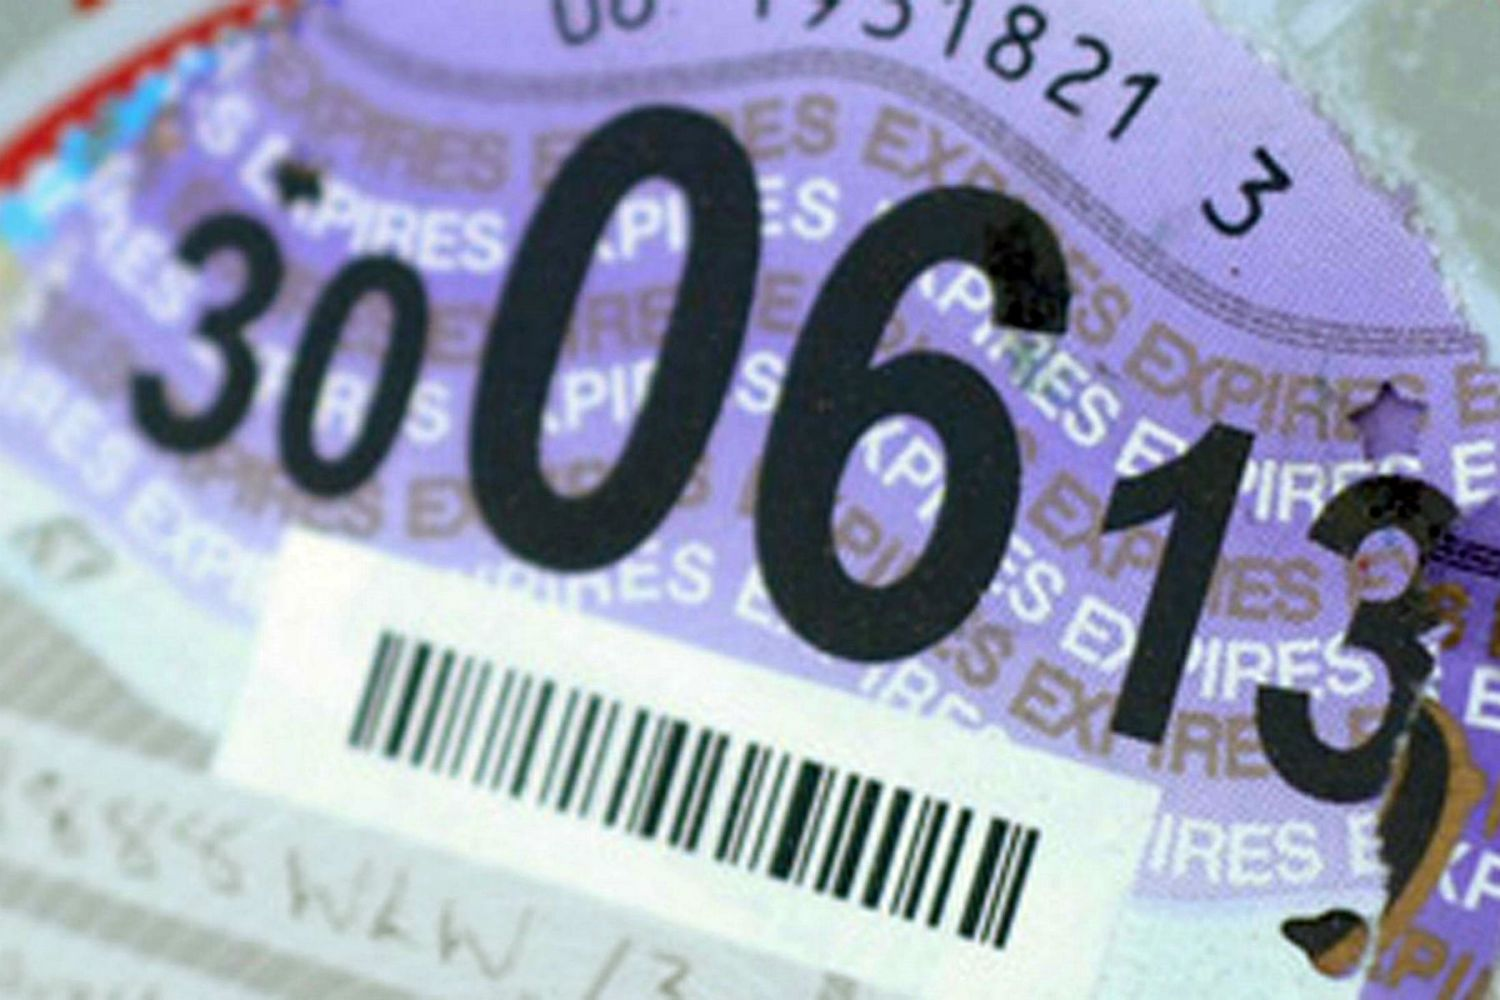 DVLA: £412m lost tax disc revenue 'completely wrong'